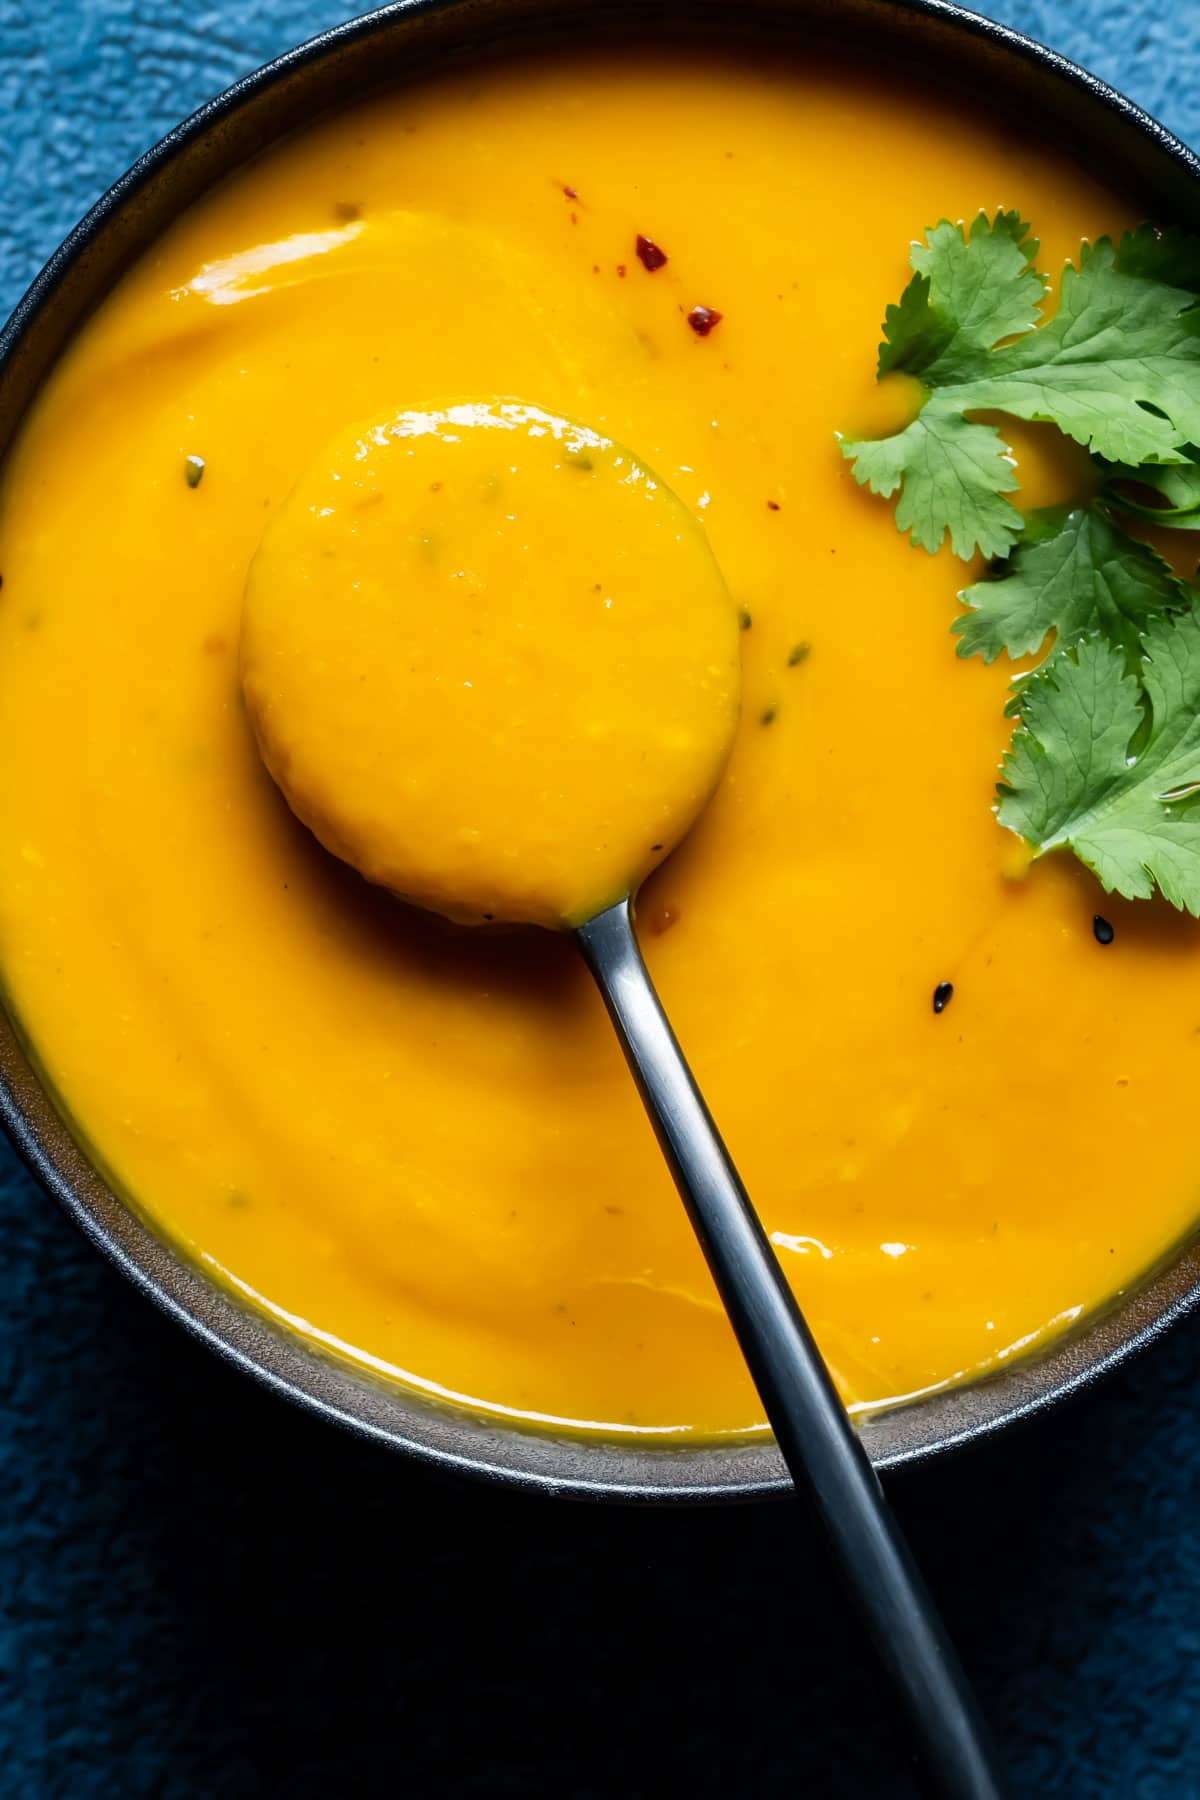 Thai sweet potato soup in a black bowl with a spoon.